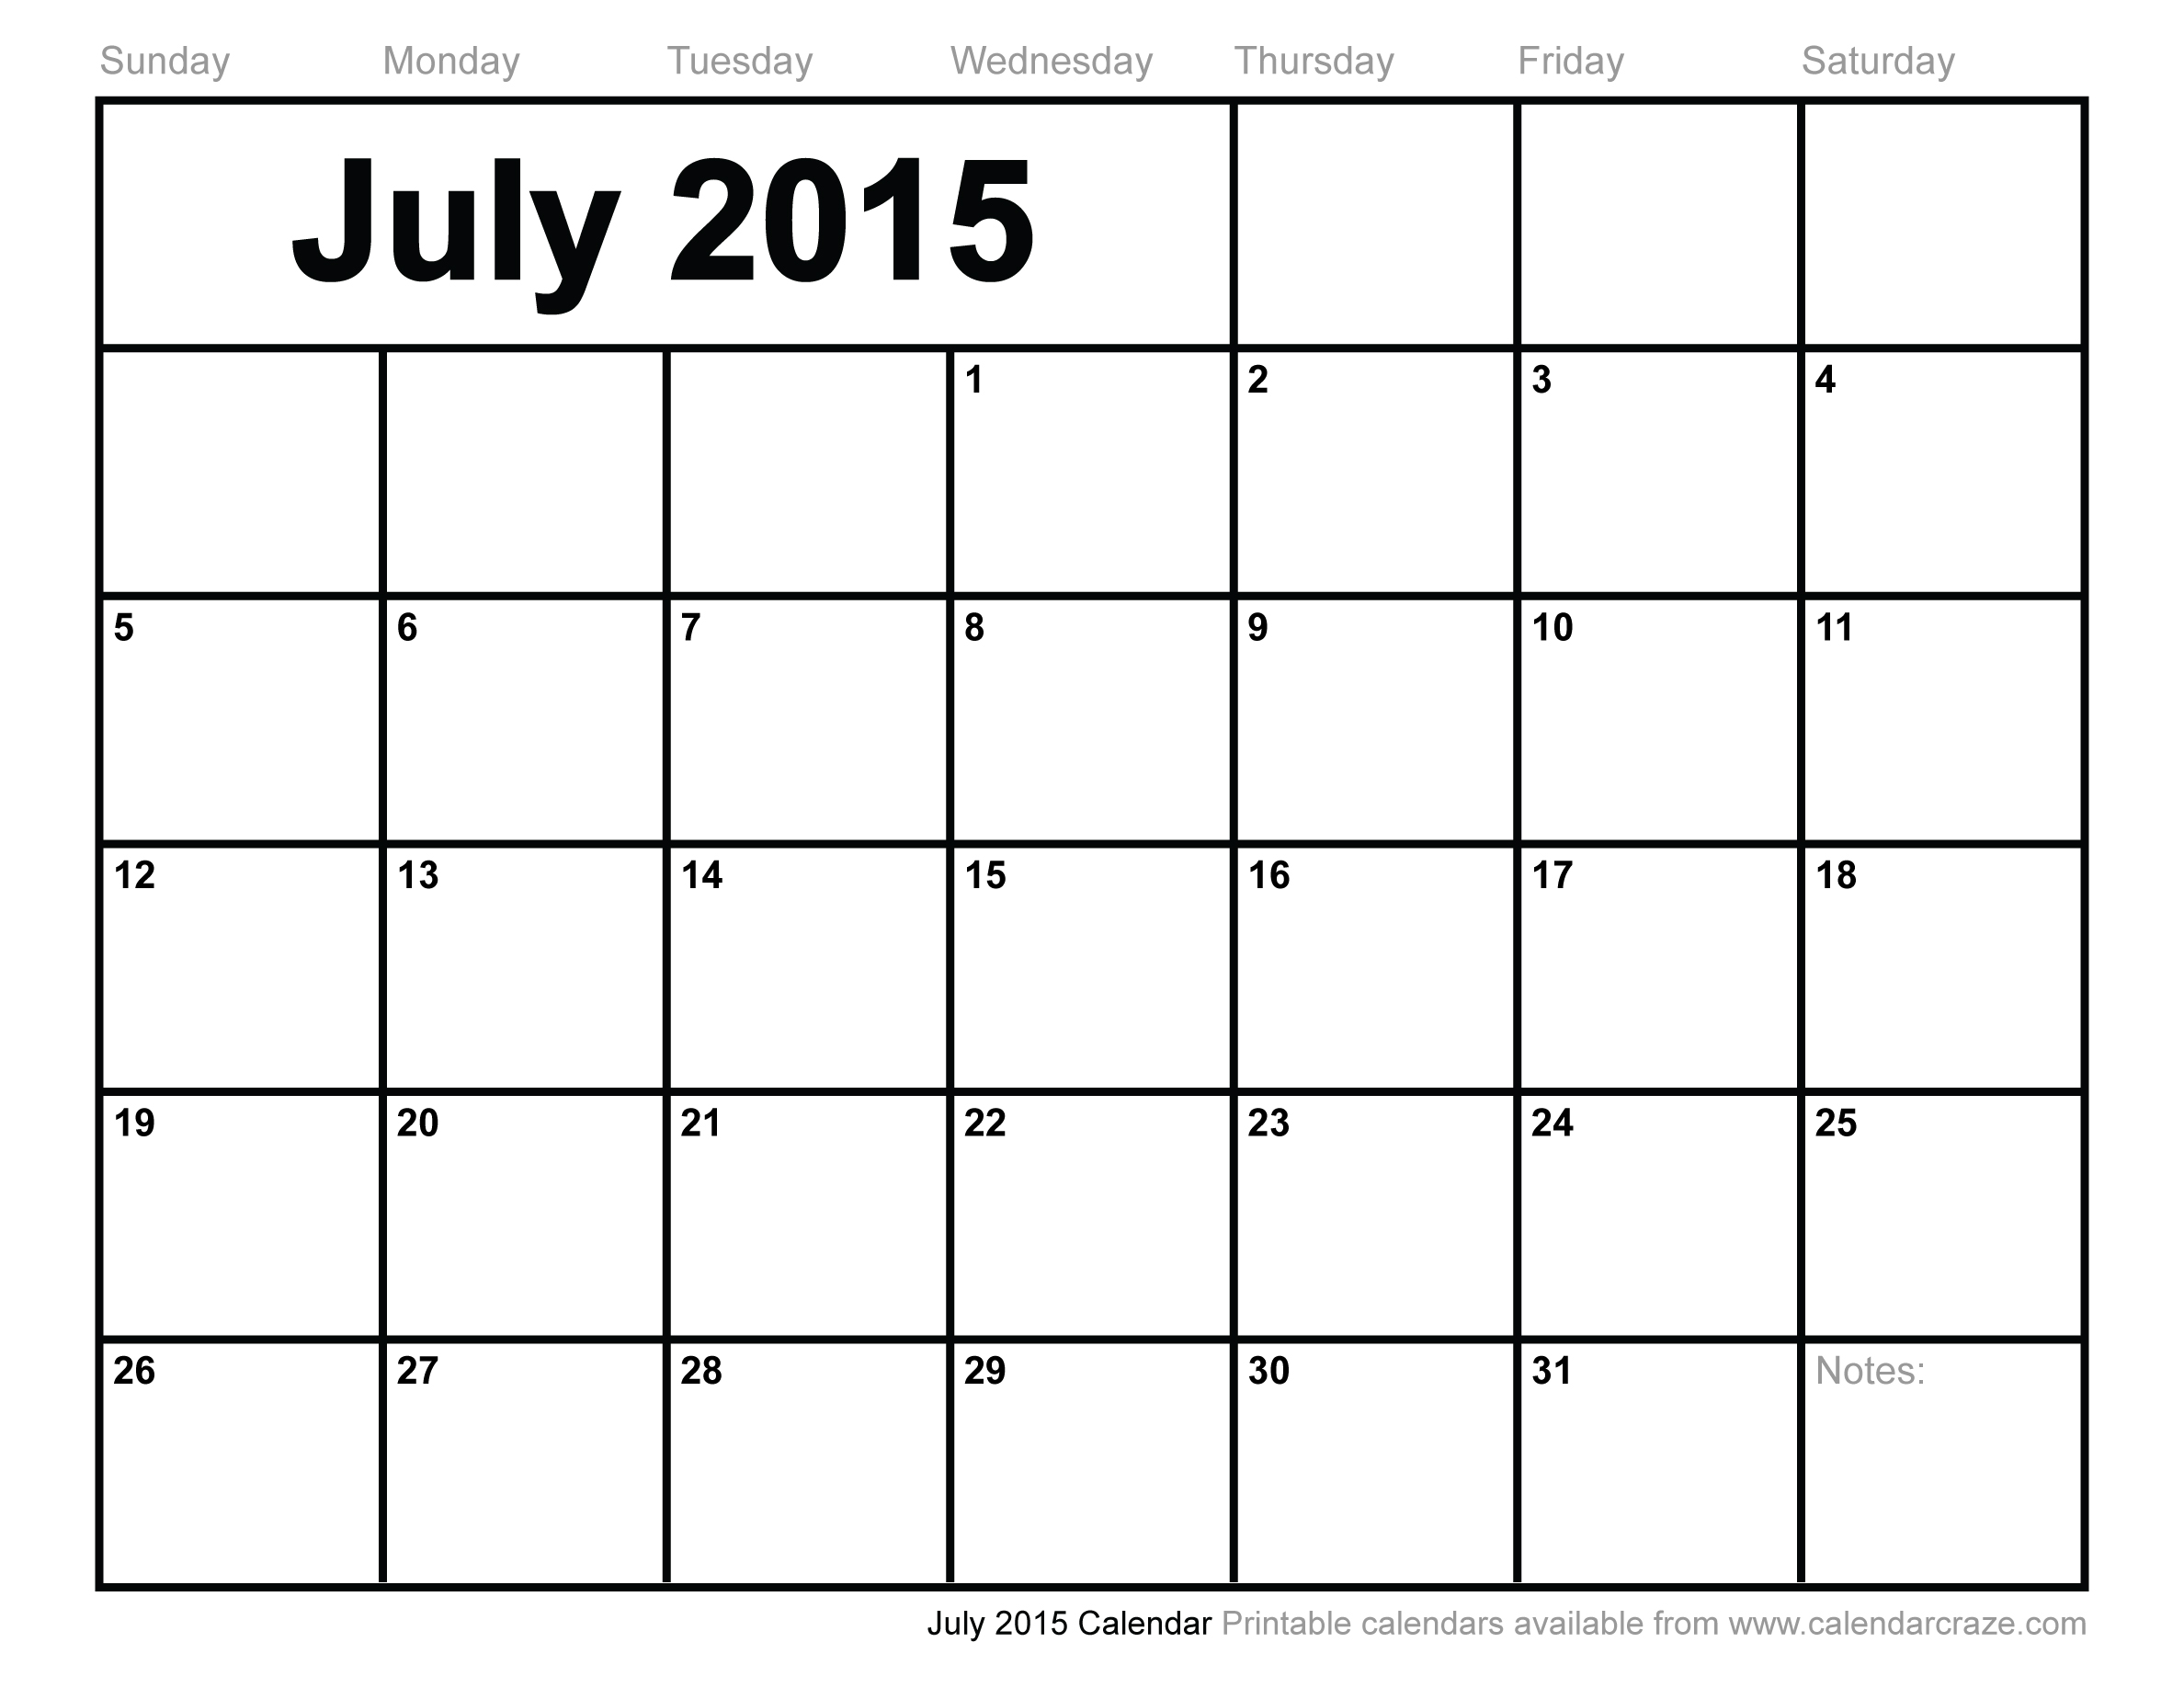 6 Images of July 2015 Calendar Printable